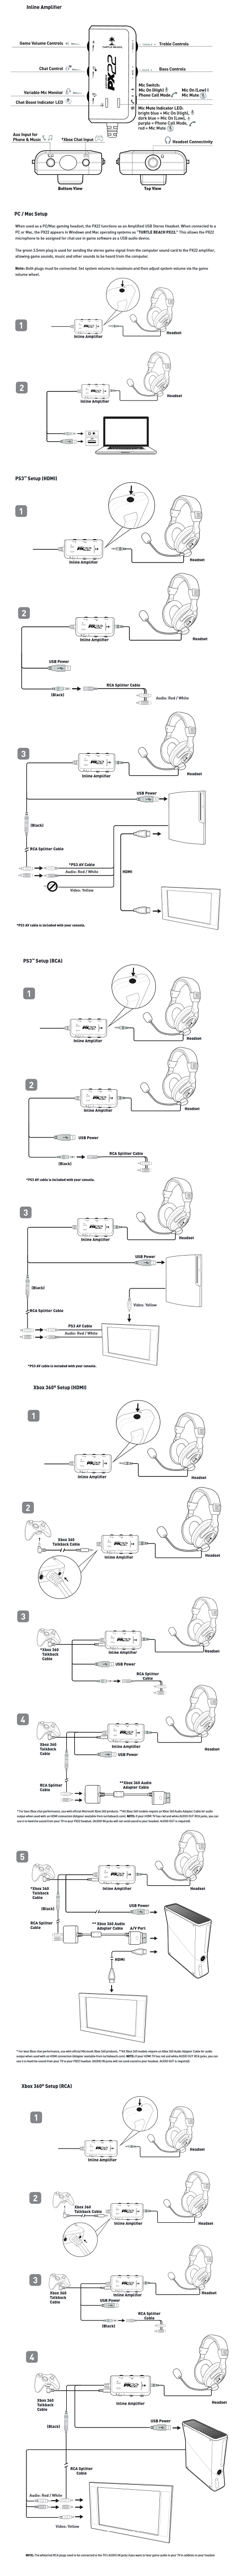 PX22_SETUP turtle beach px22 wiring diagram how to rewire turtle beach Ear Force PX21 at crackthecode.co